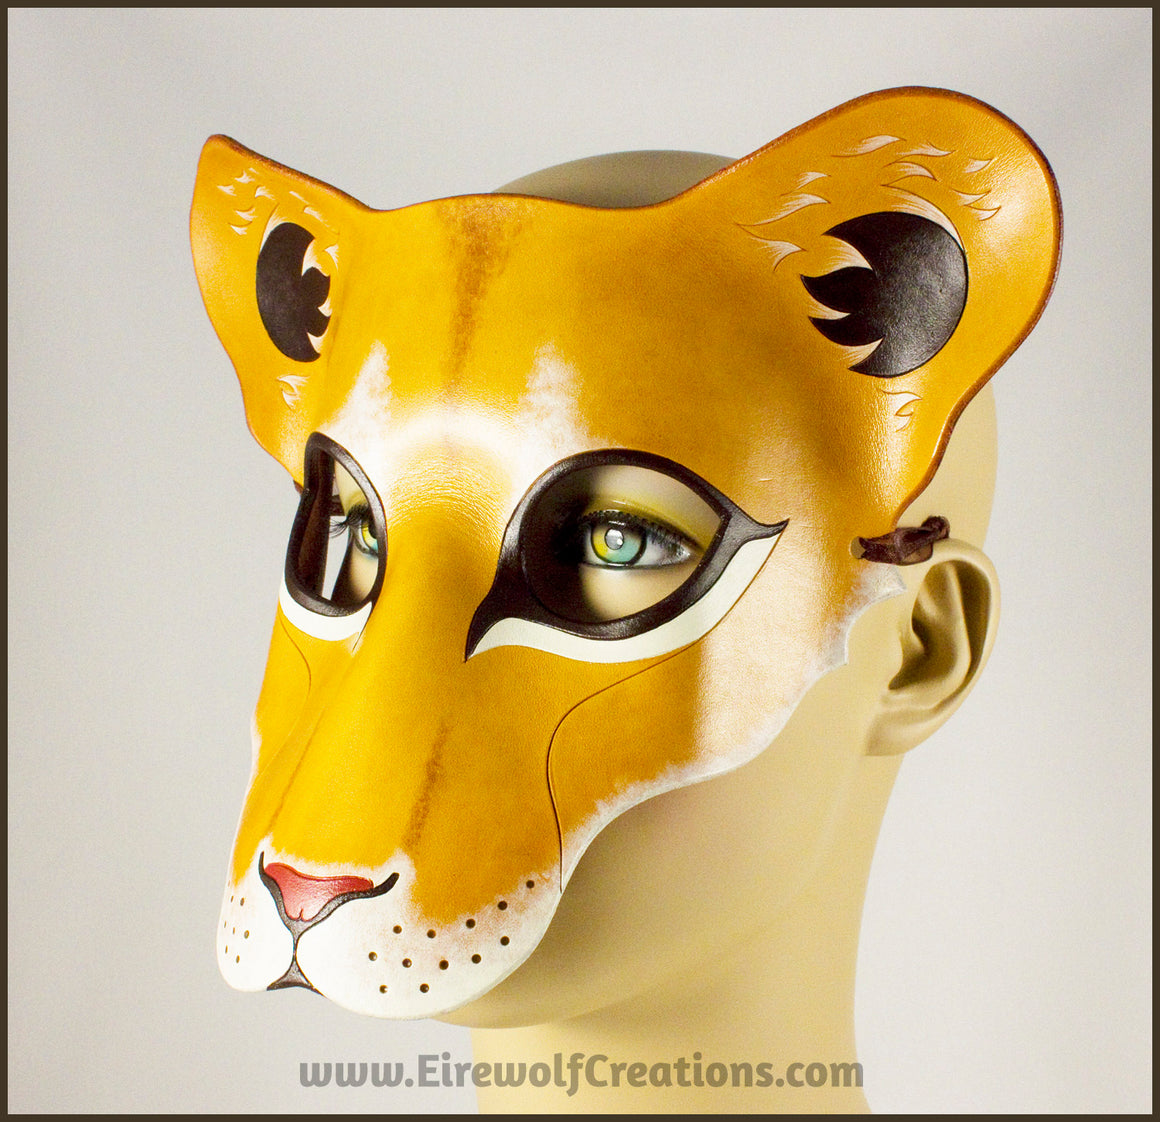 Lioness mask, handmade leather lion wild cat mask for Halloween, Lion King theater, Mardi Gras, masquerade costume